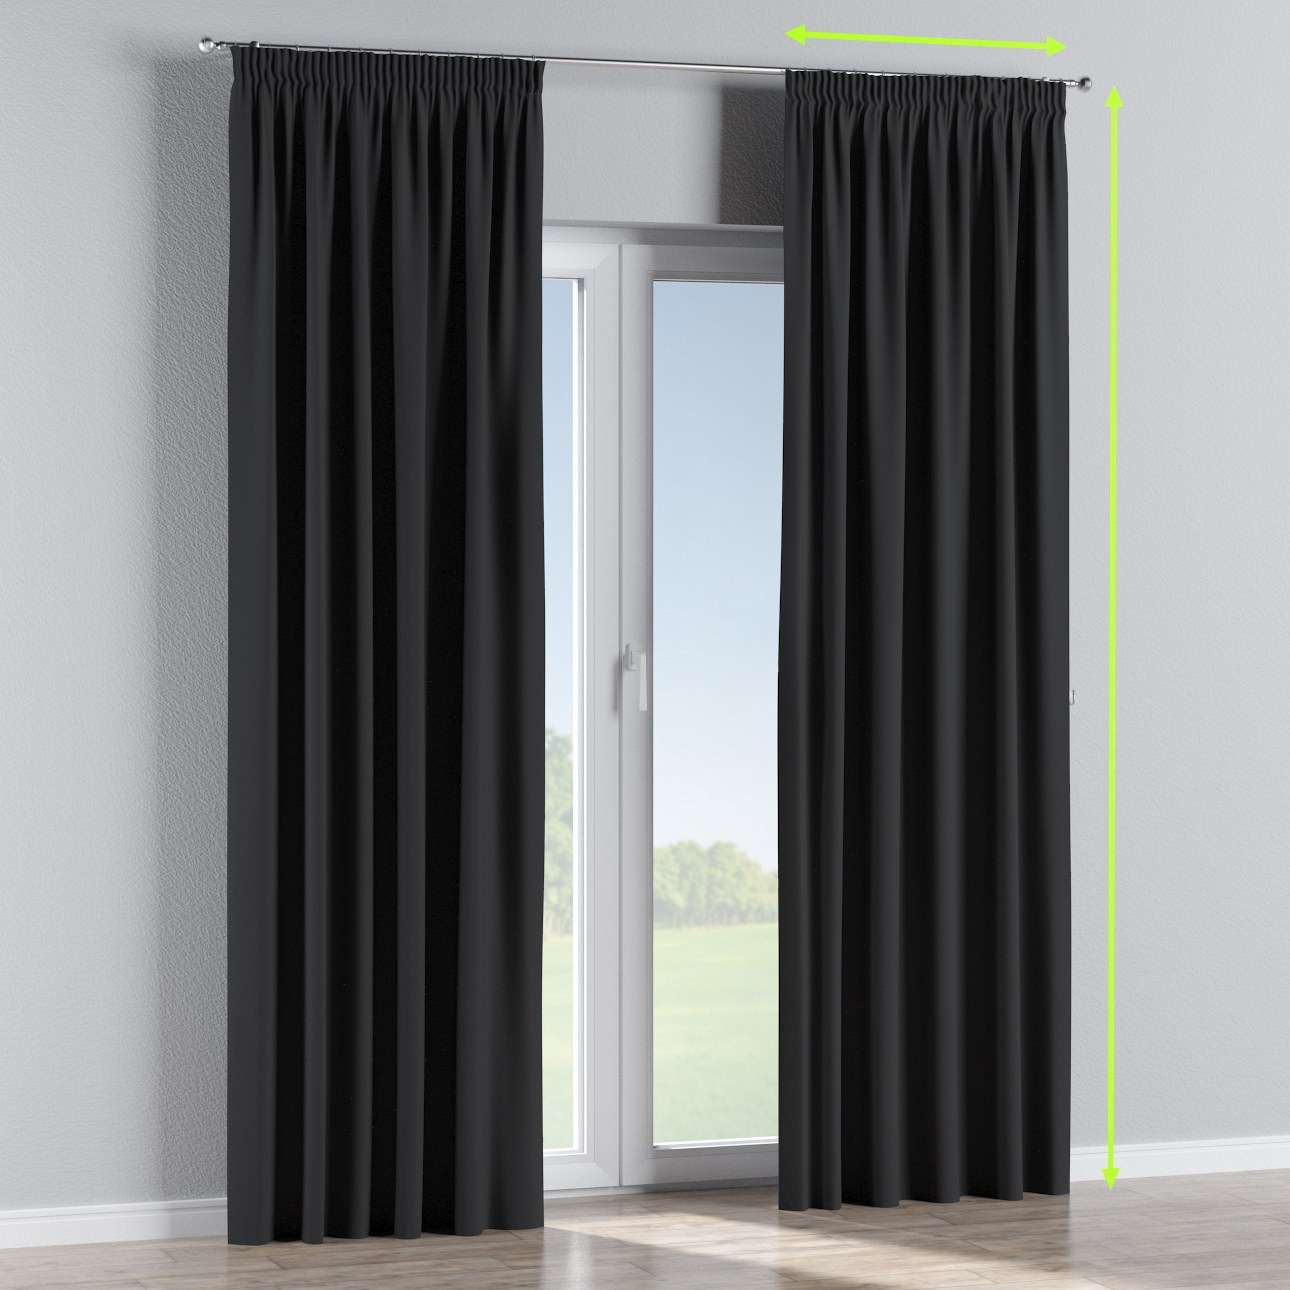 Pencil pleat curtains in collection Blackout, fabric: 269-99